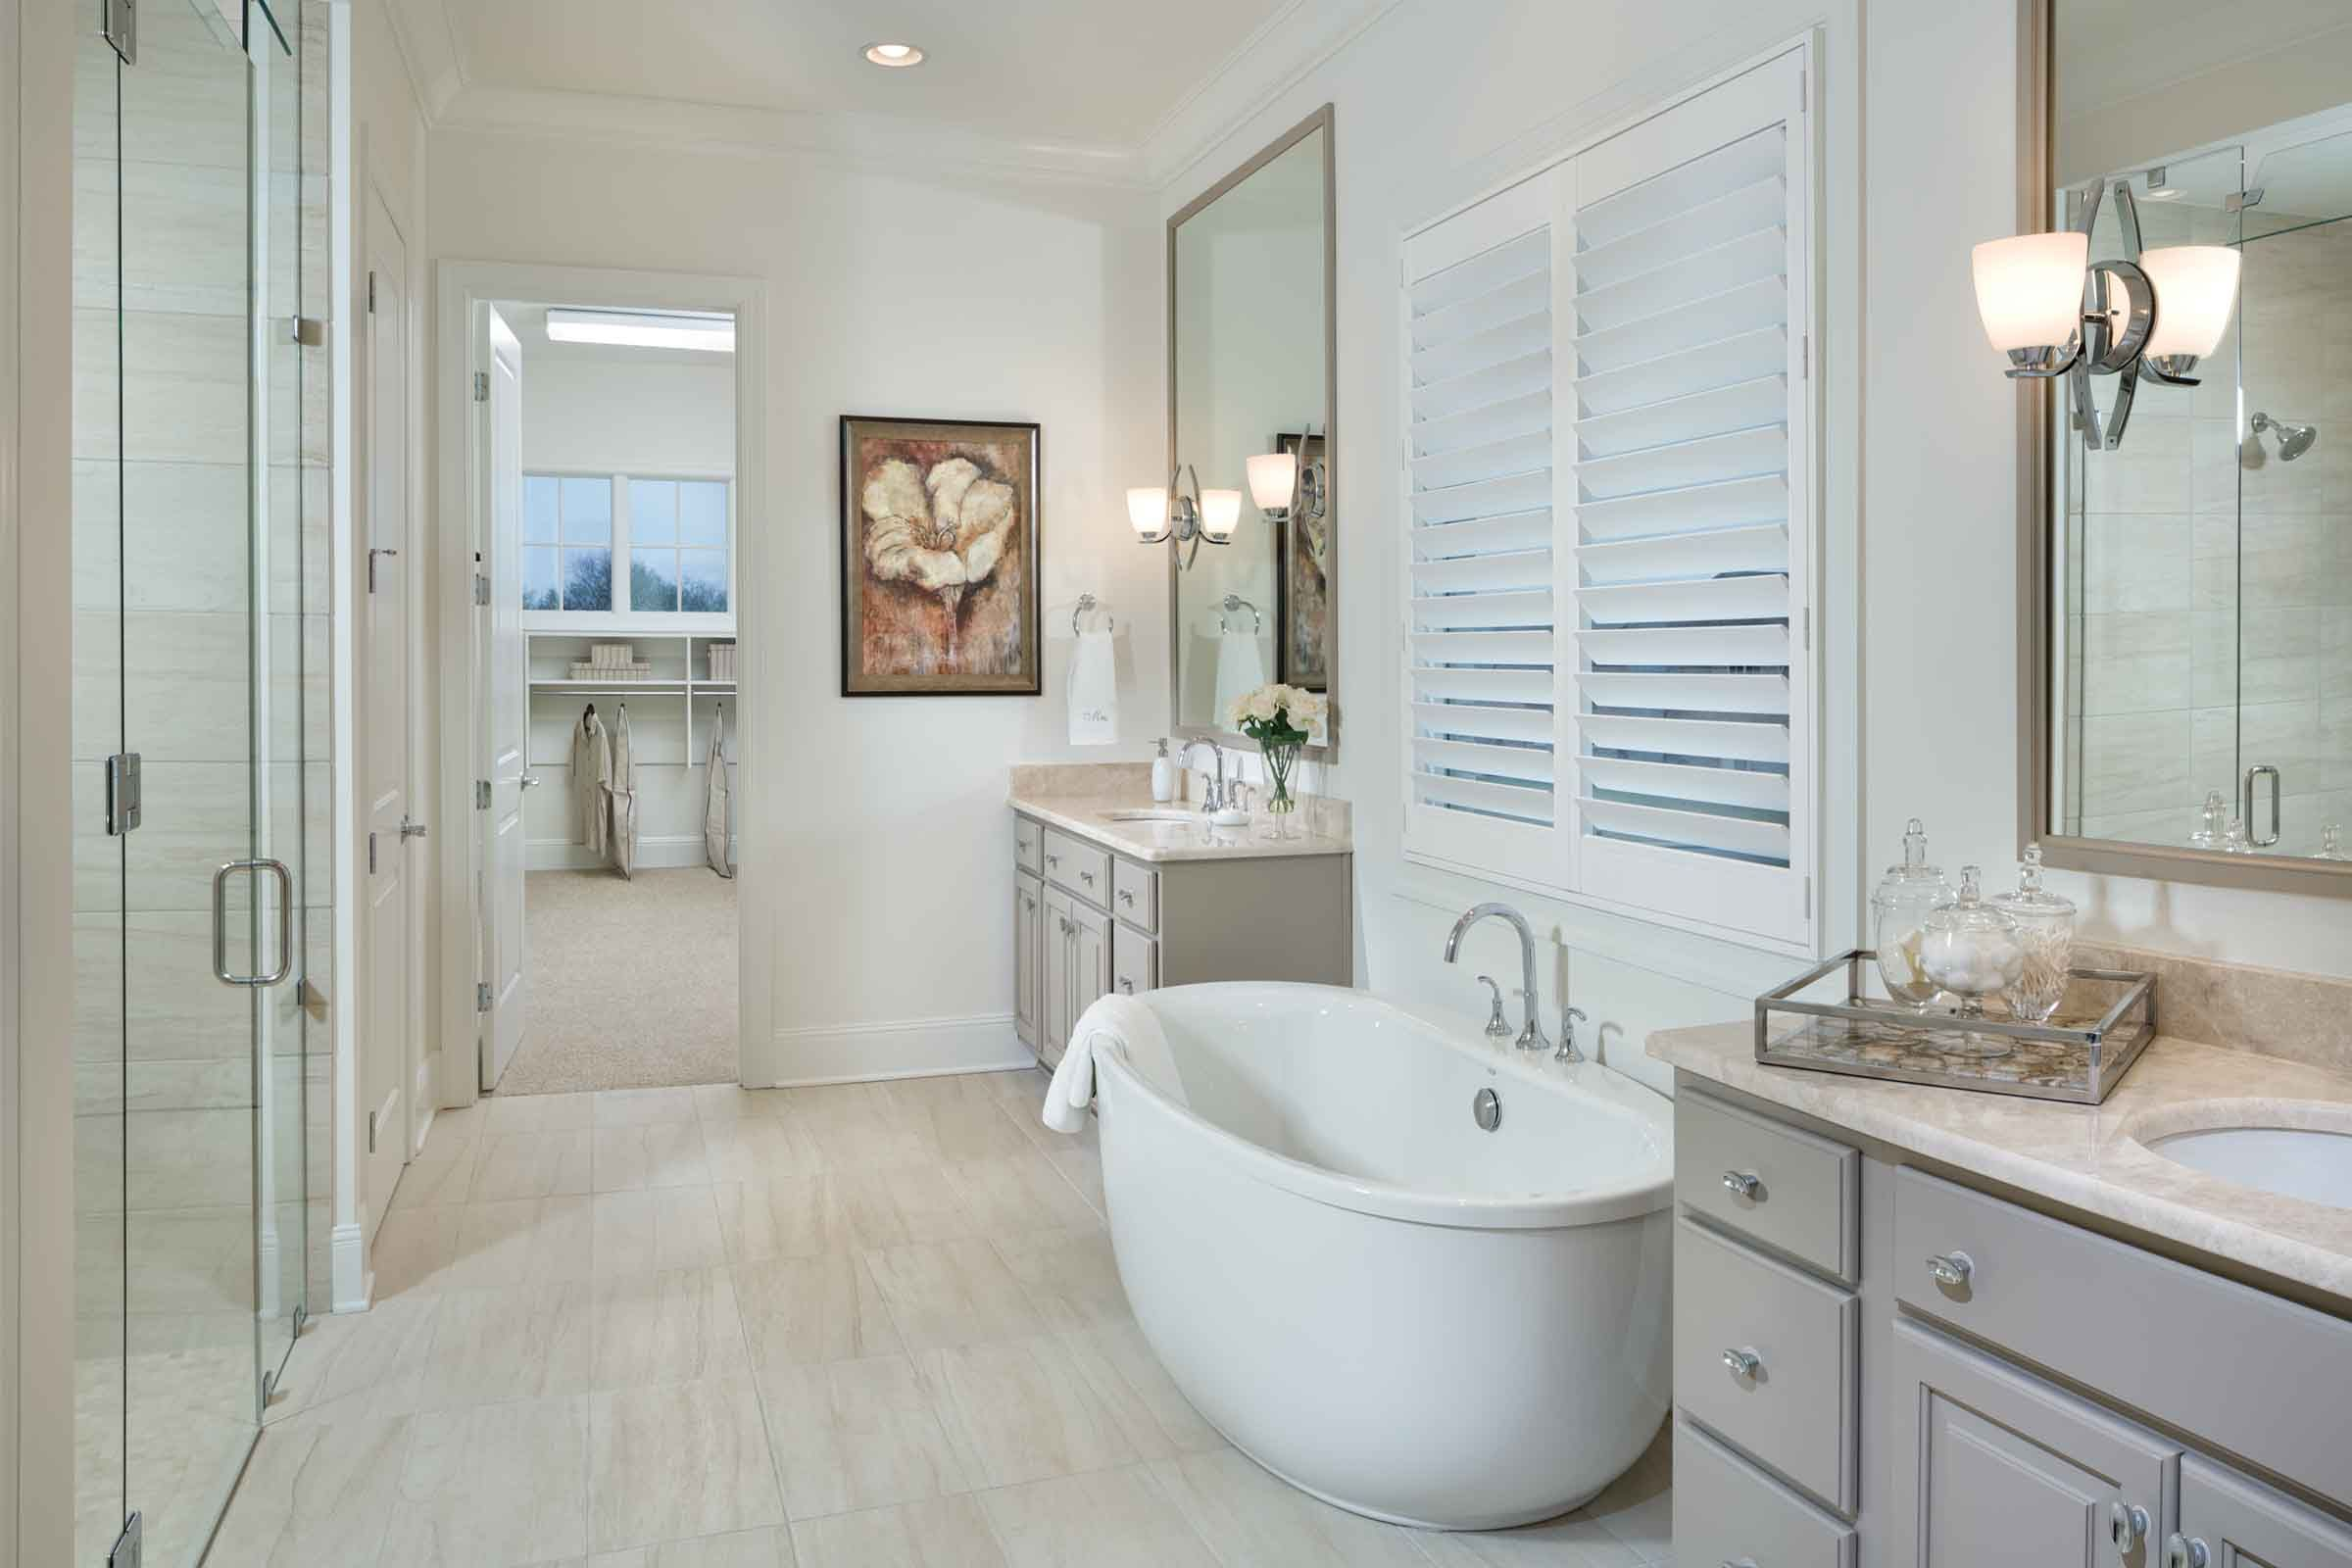 A Master Bathroom Should Be Your Serenity Let Our Team Help